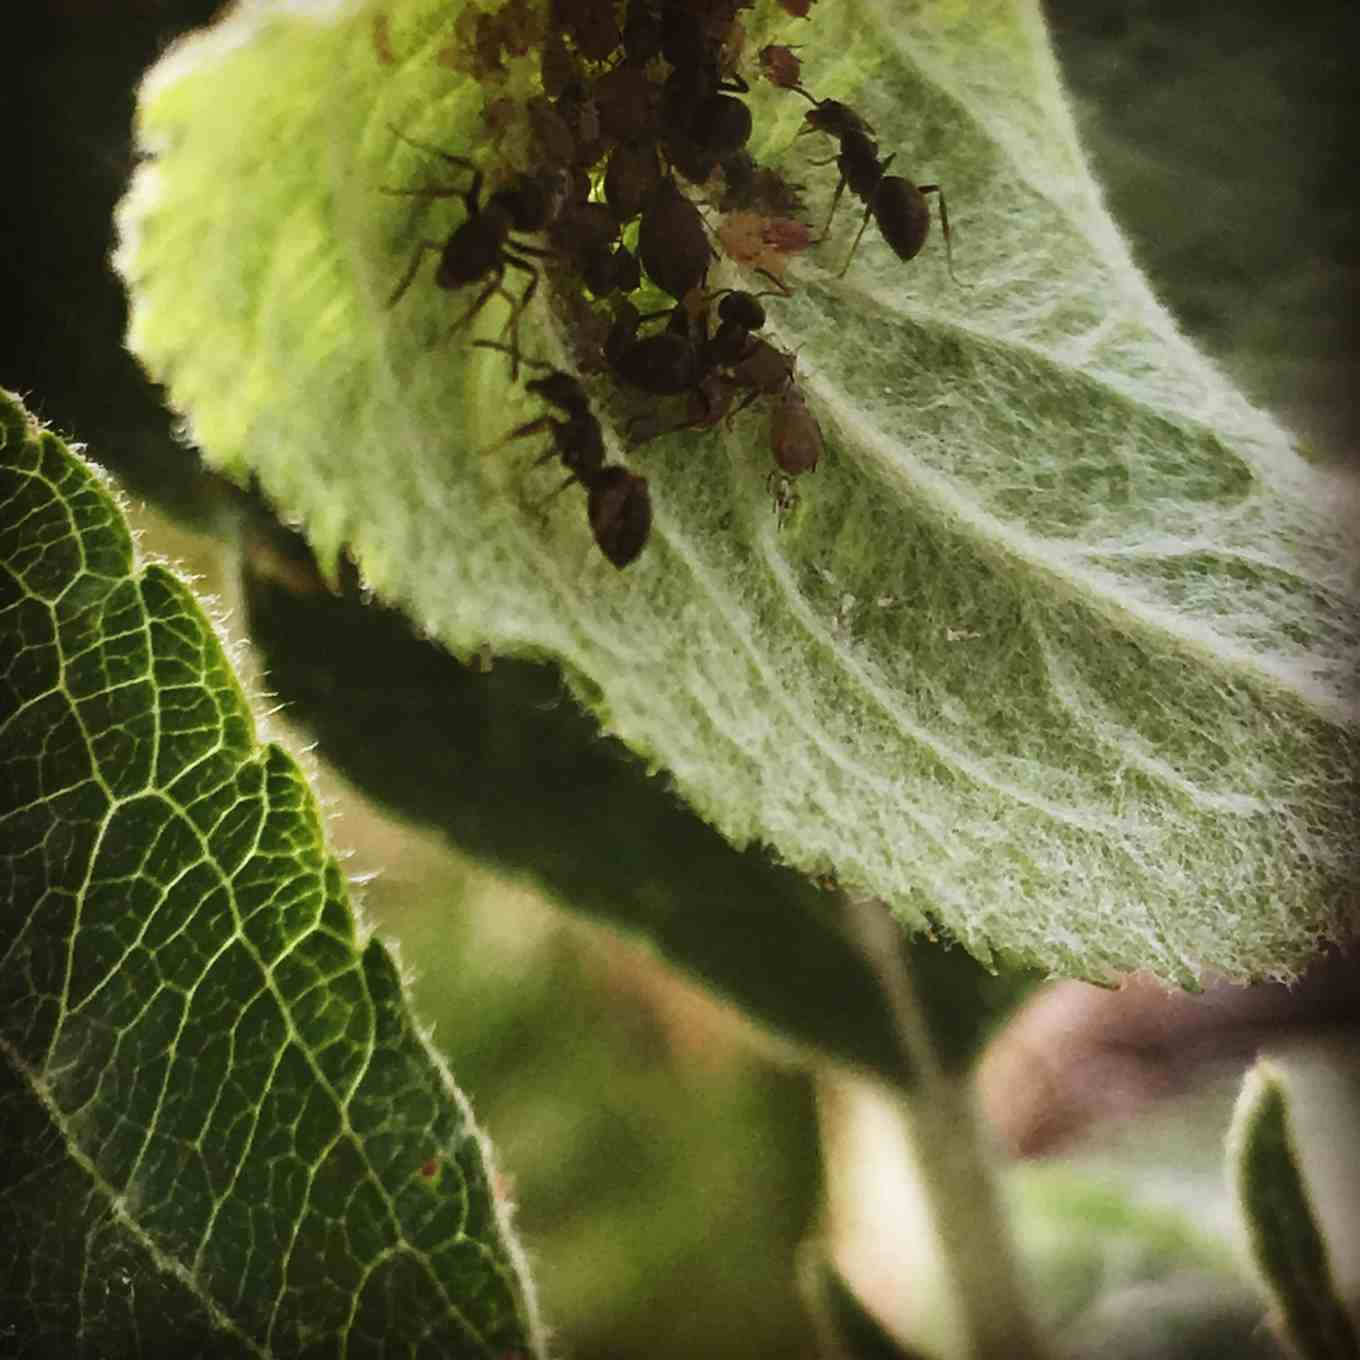 ants and aphids on our apple tree leaves